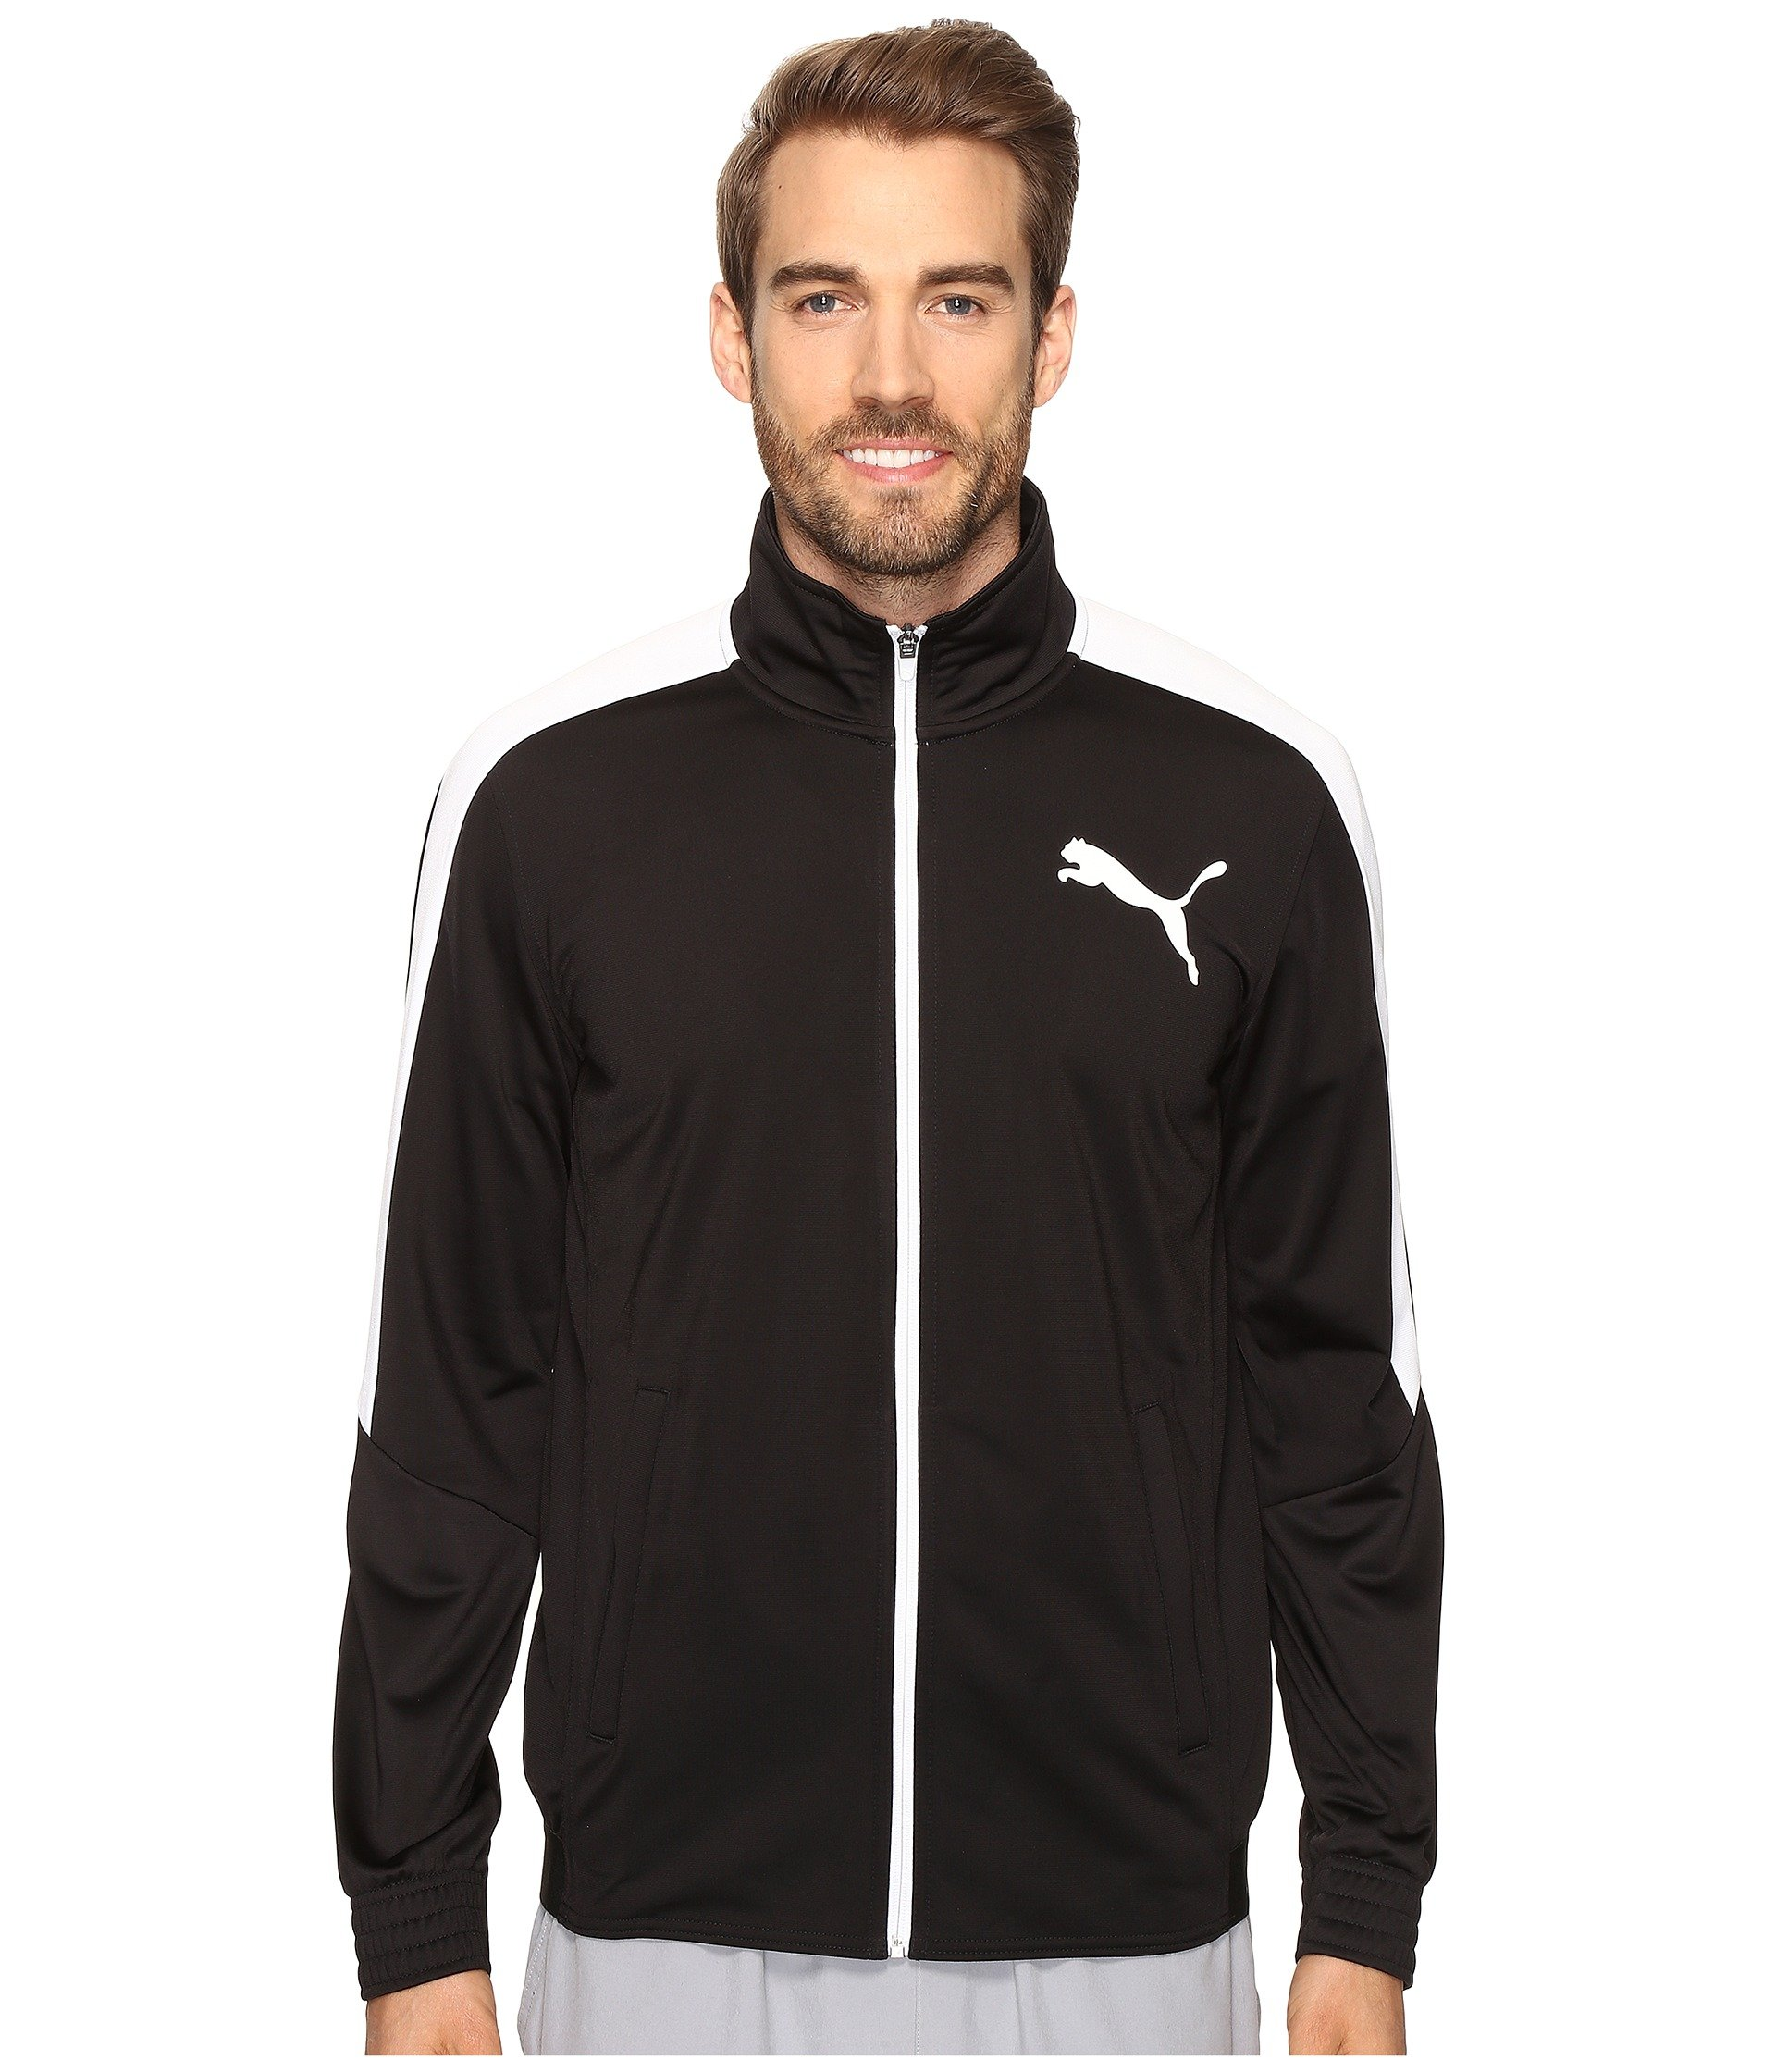 PUMA Men's Contrast Jacket, Black White, X-Large by PUMA